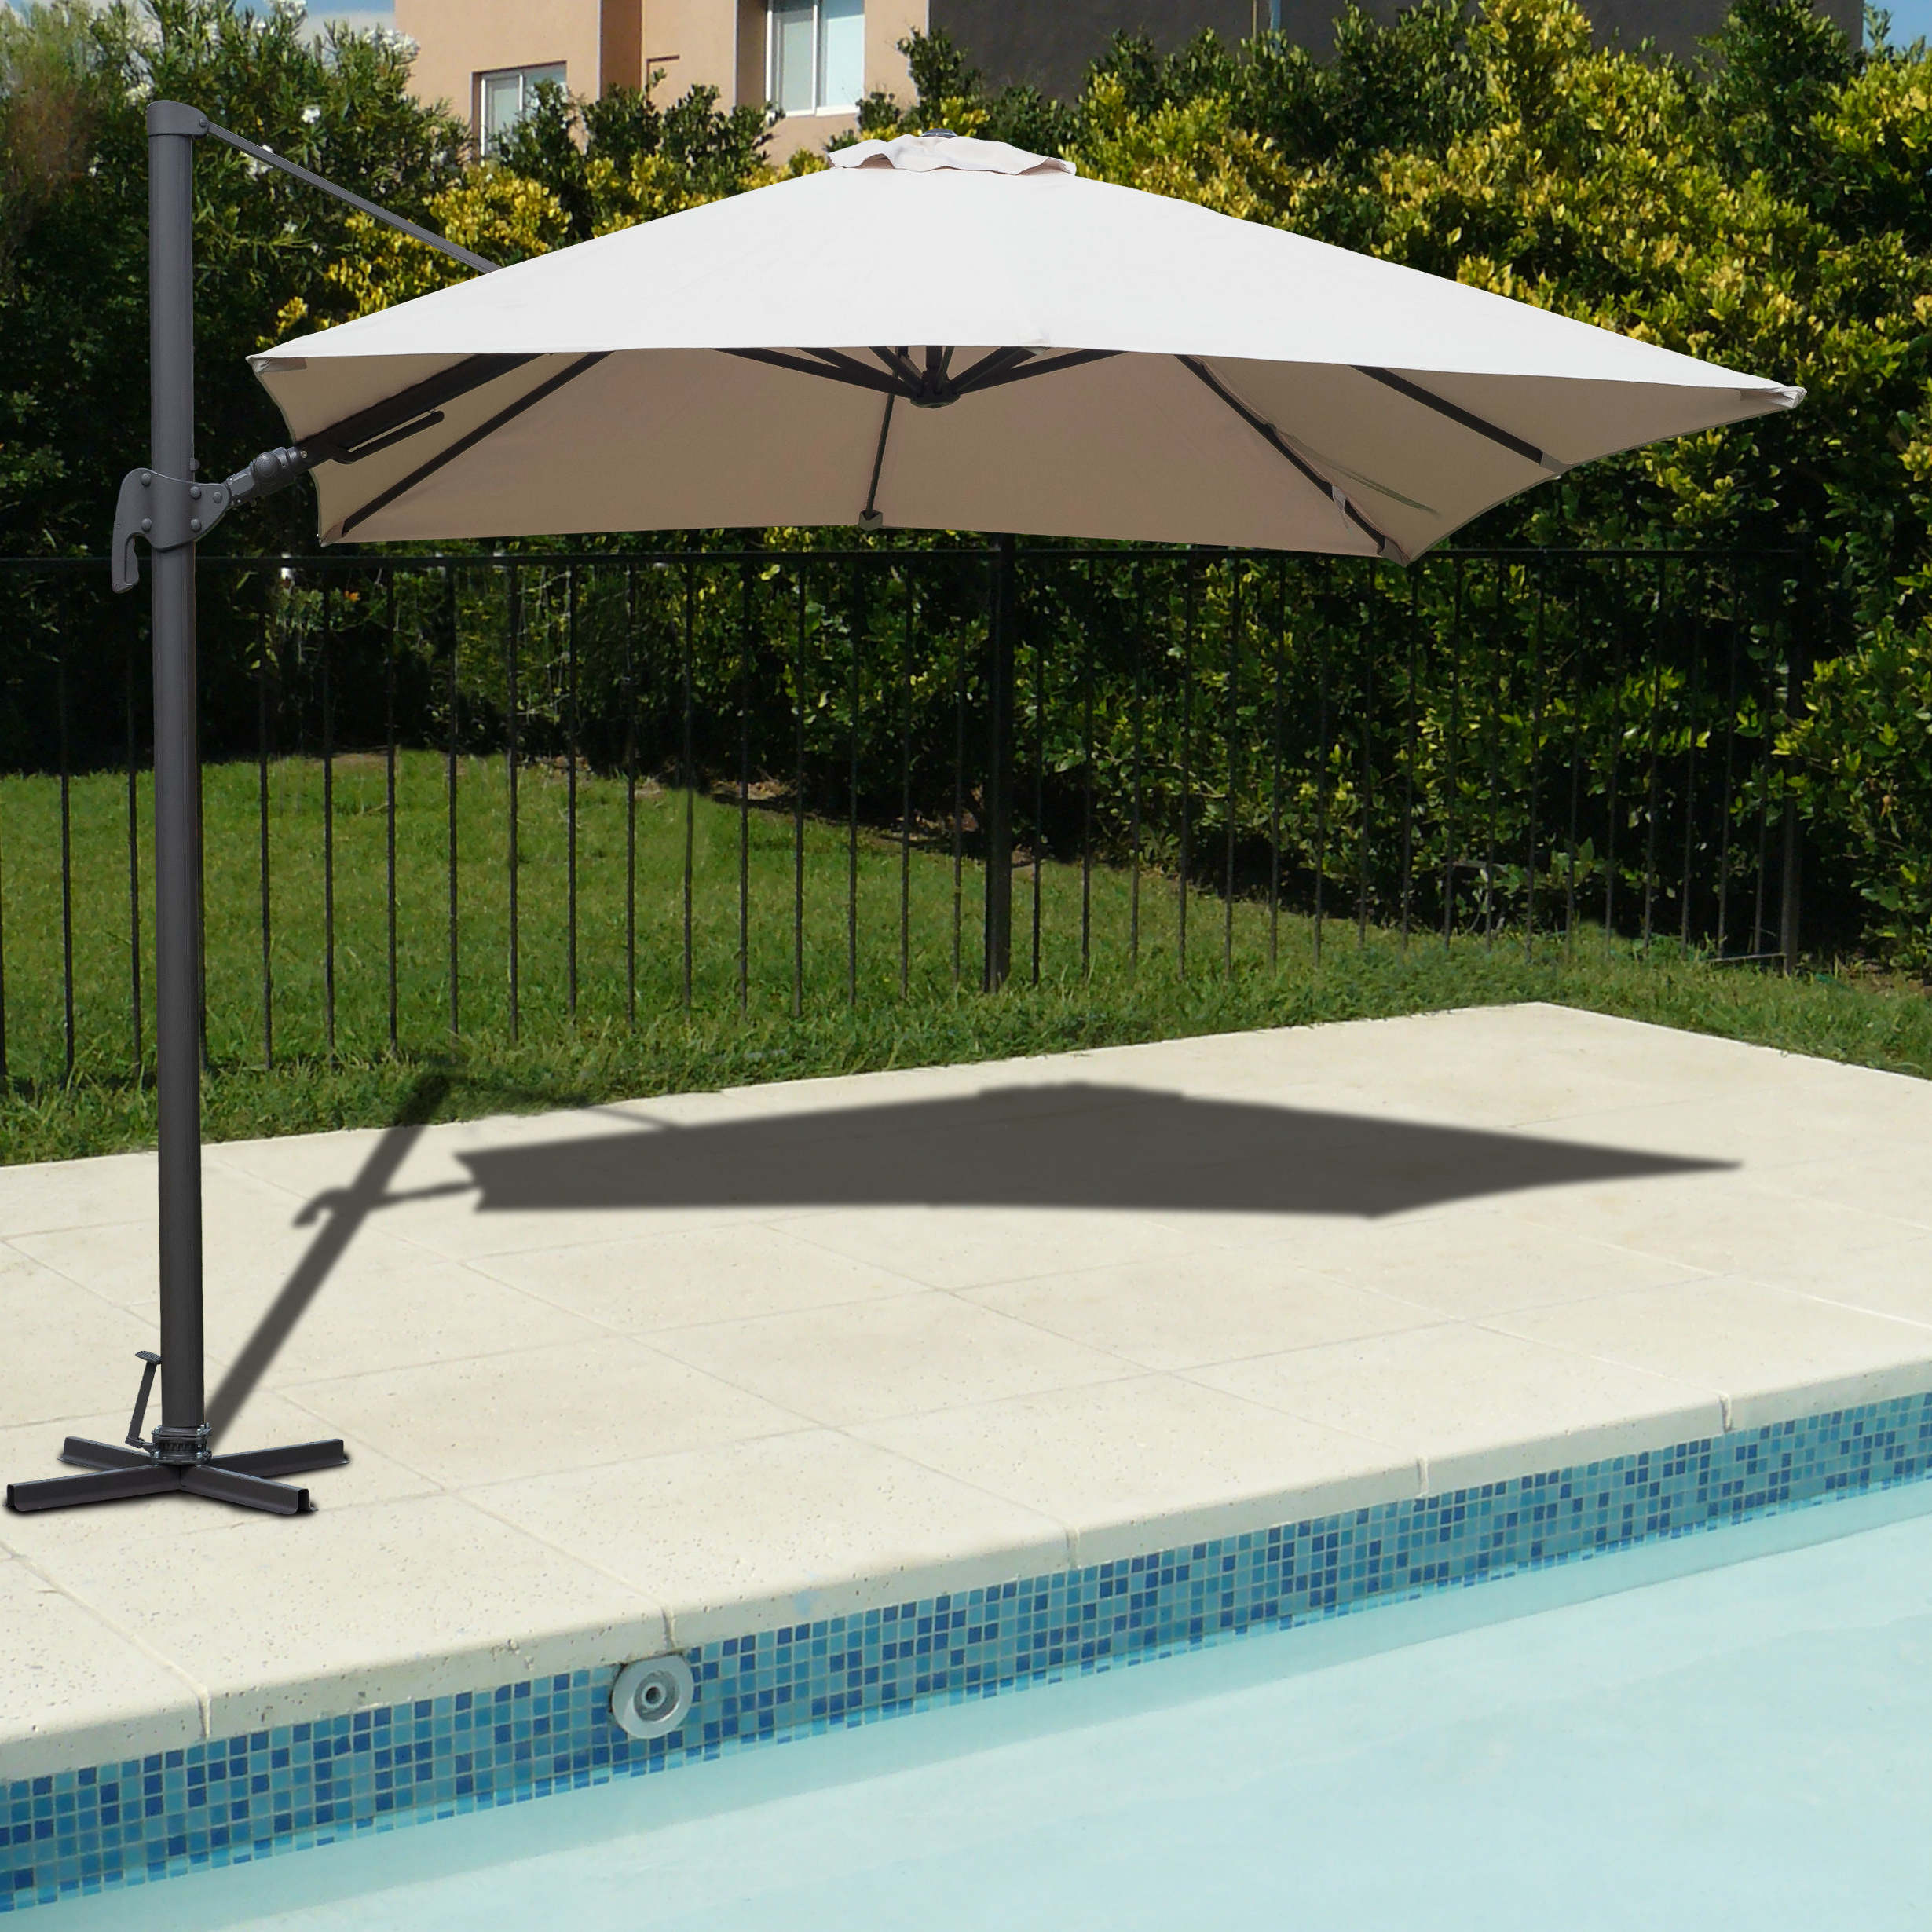 Grote Liberty Aluminum Square Cantilever Umbrella Throughout Best And Newest Grote Liberty Aluminum Square Cantilever Umbrellas (View 2 of 20)